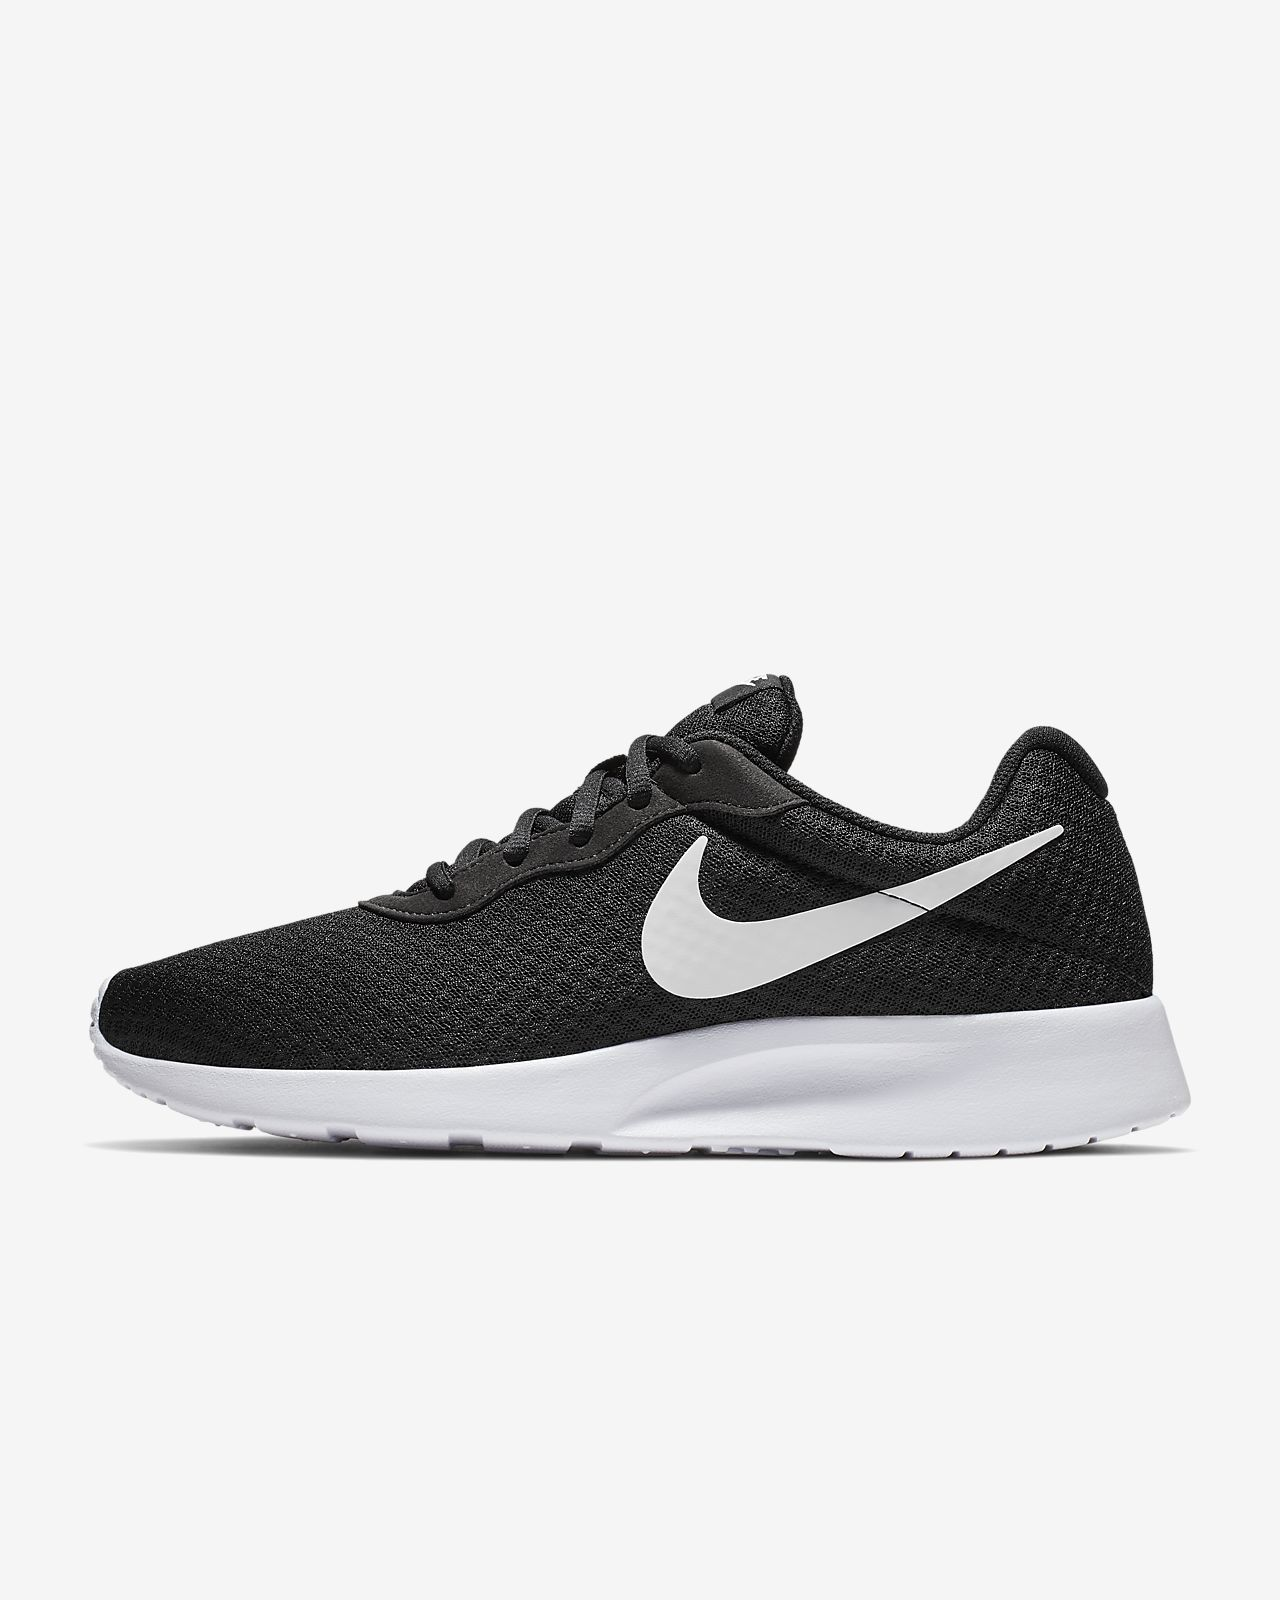 low priced 6772f 36ab1 Low Resolution Nike Tanjun Men s Shoe Nike Tanjun Men s Shoe